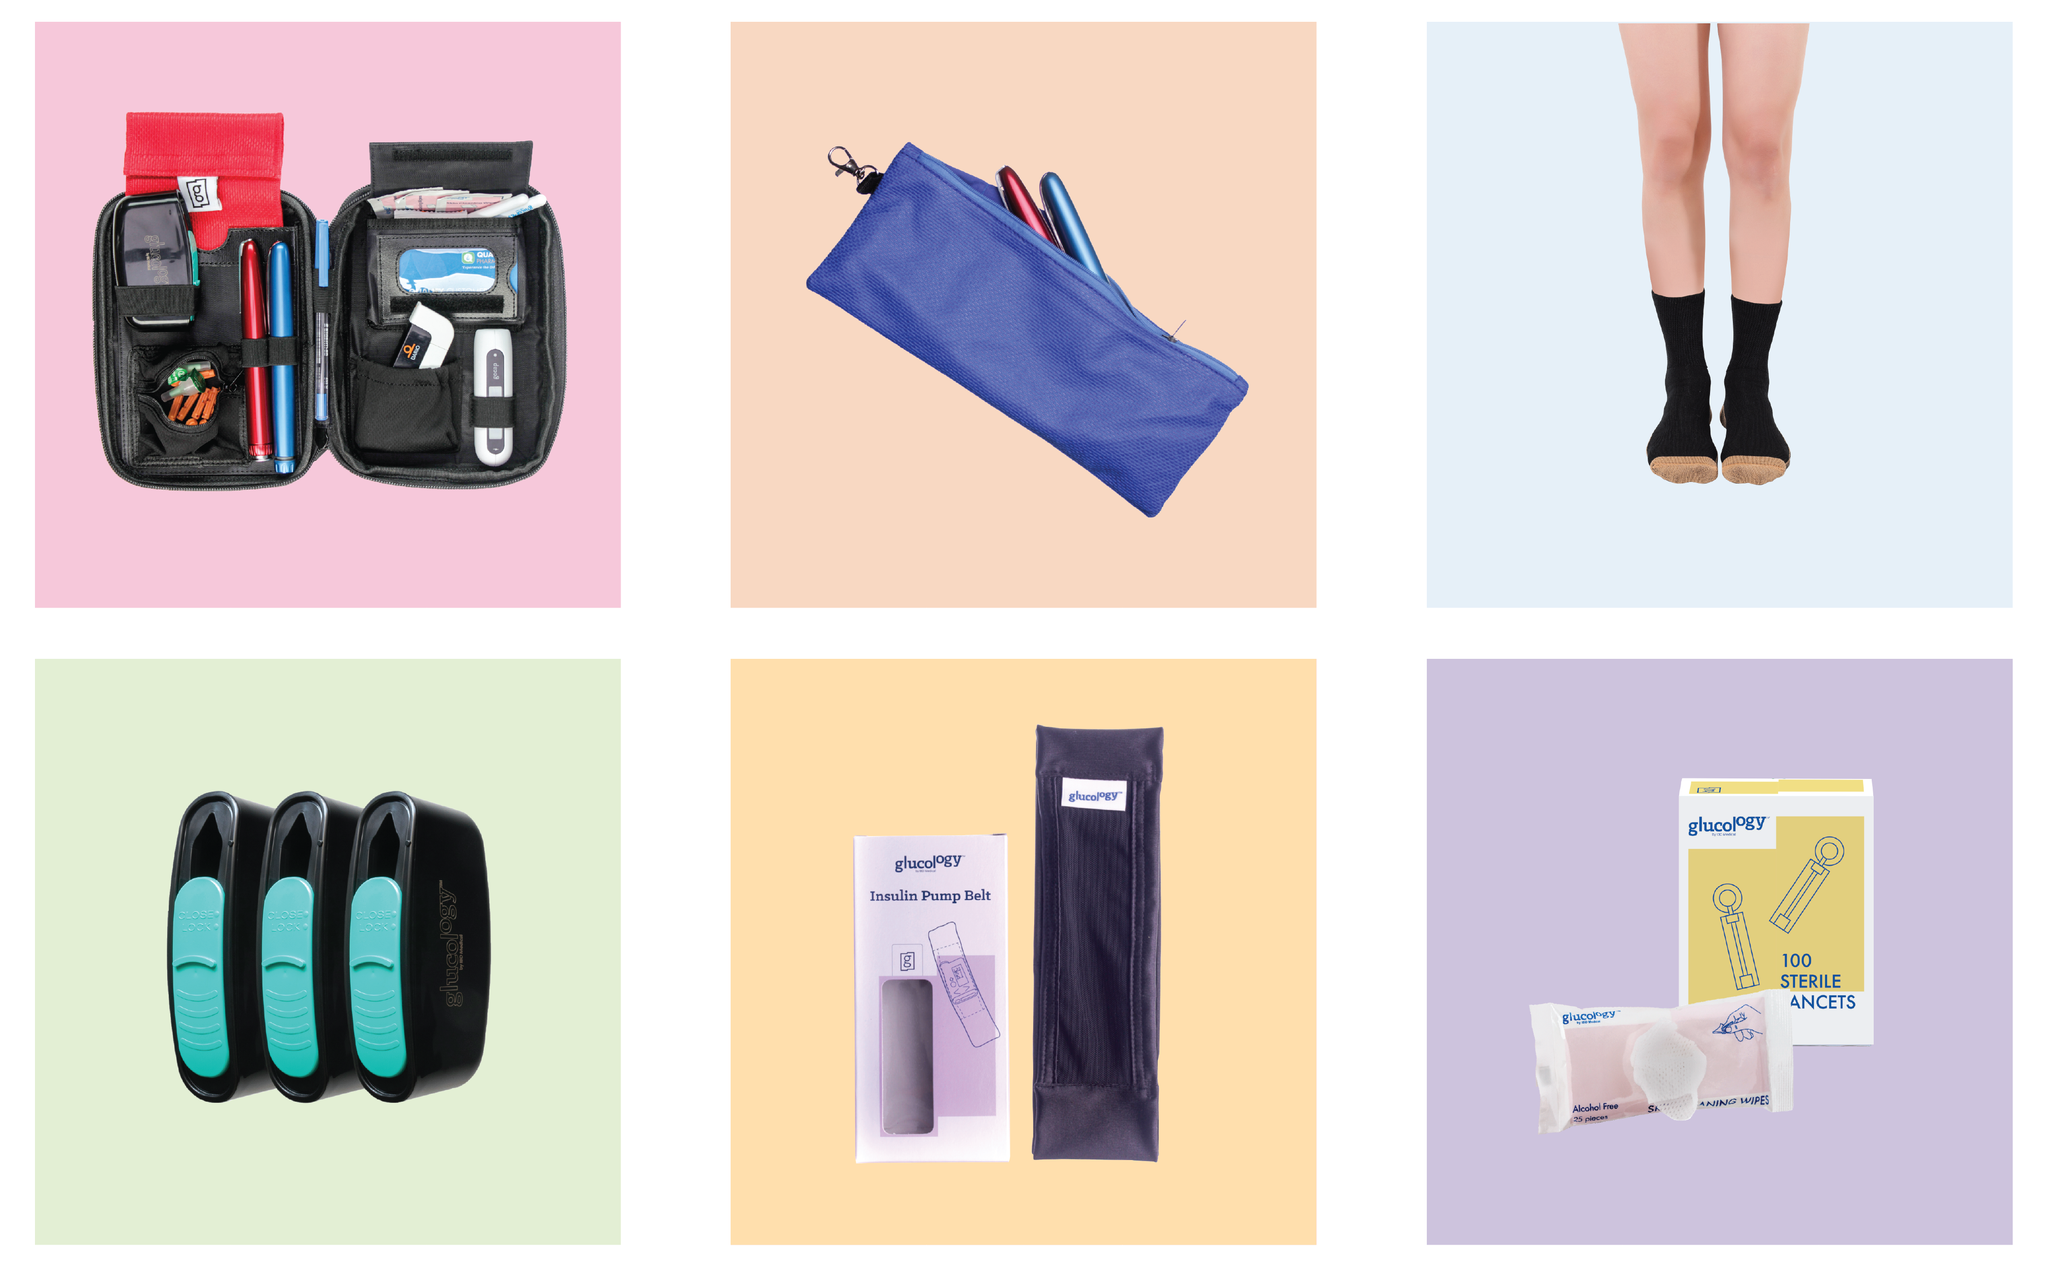 Diabetes support products accessories